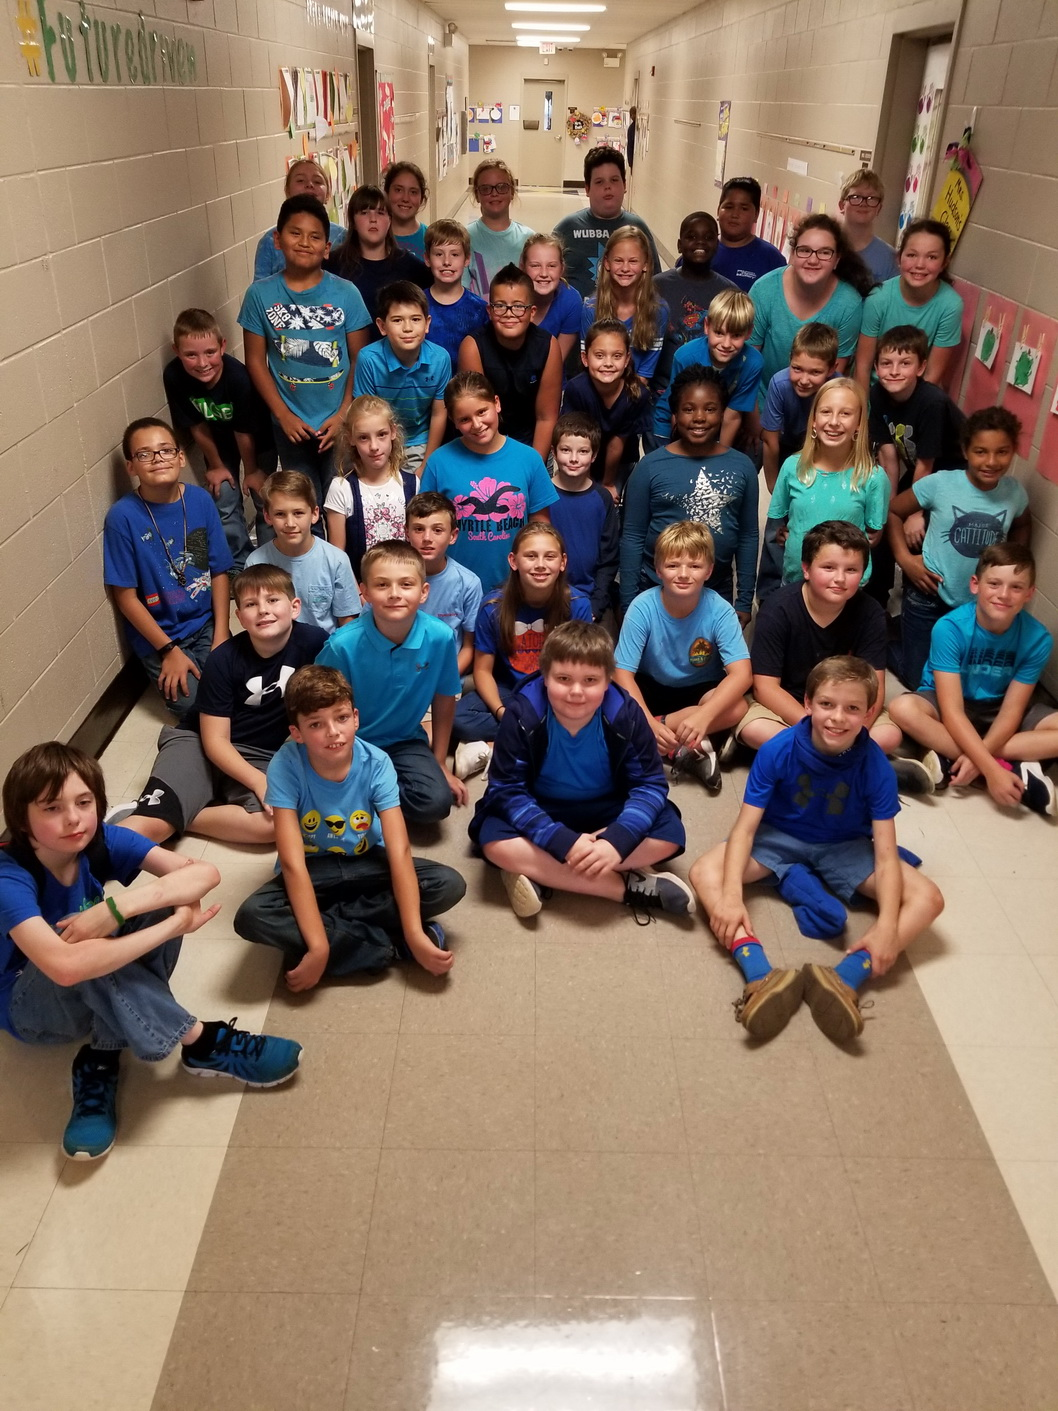 HT 5th graders wear blue for World Day of Bullying Prevention